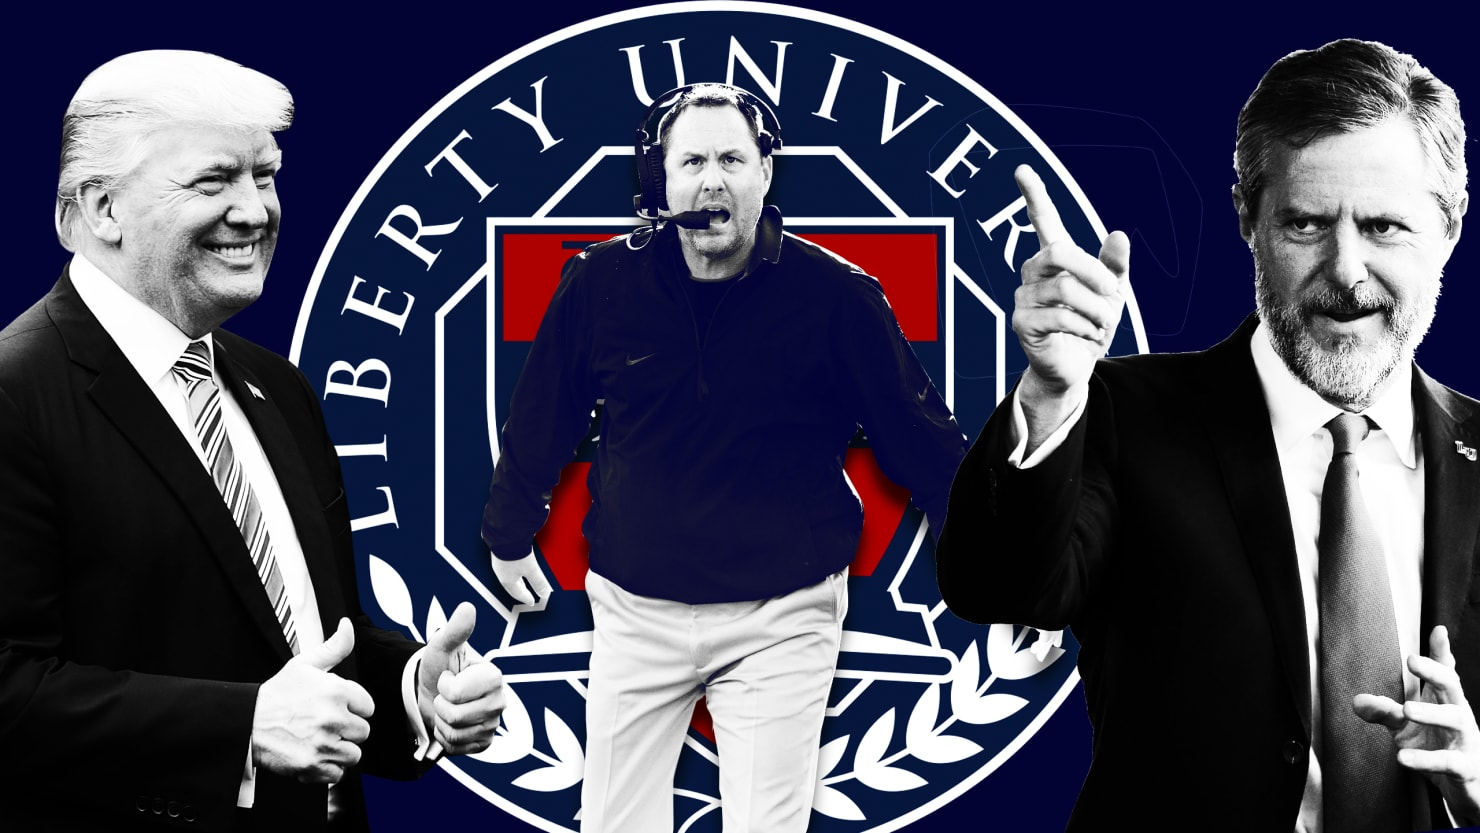 Holy Hypocrisy: Hugh Freeze, Liberty University's New Football Coach, Loves Prostitutes